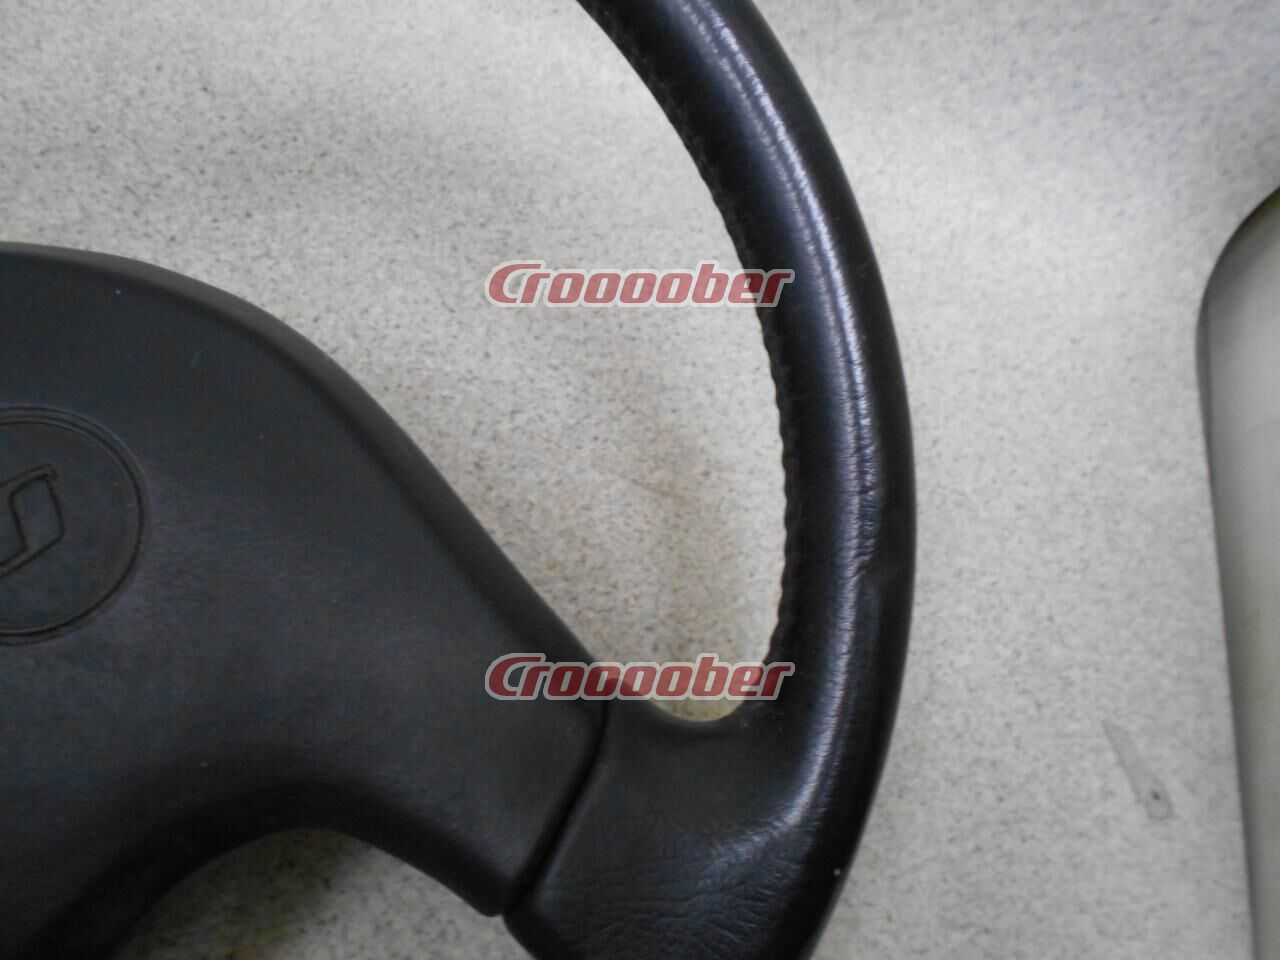 Original NISSAN Genuine Leather Steering ☆ 5/30 Price Cuts ☆ | Stearings | Croooober Japan